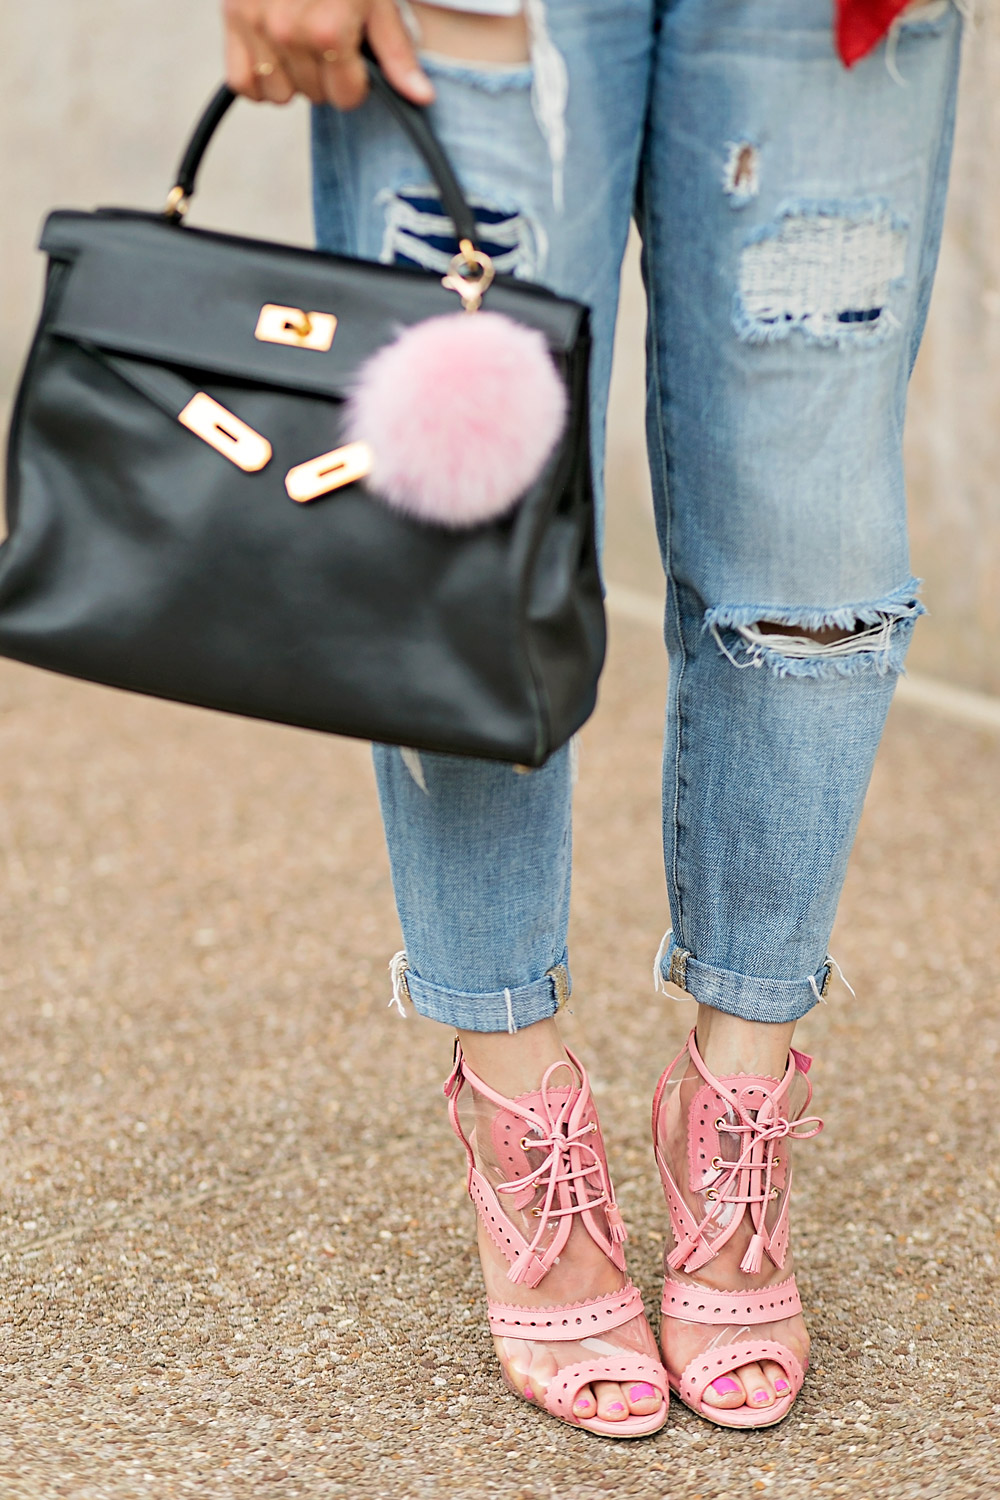 boyfriend jeans with black hermes kelly bag and oscar de la renta pink oxford heels